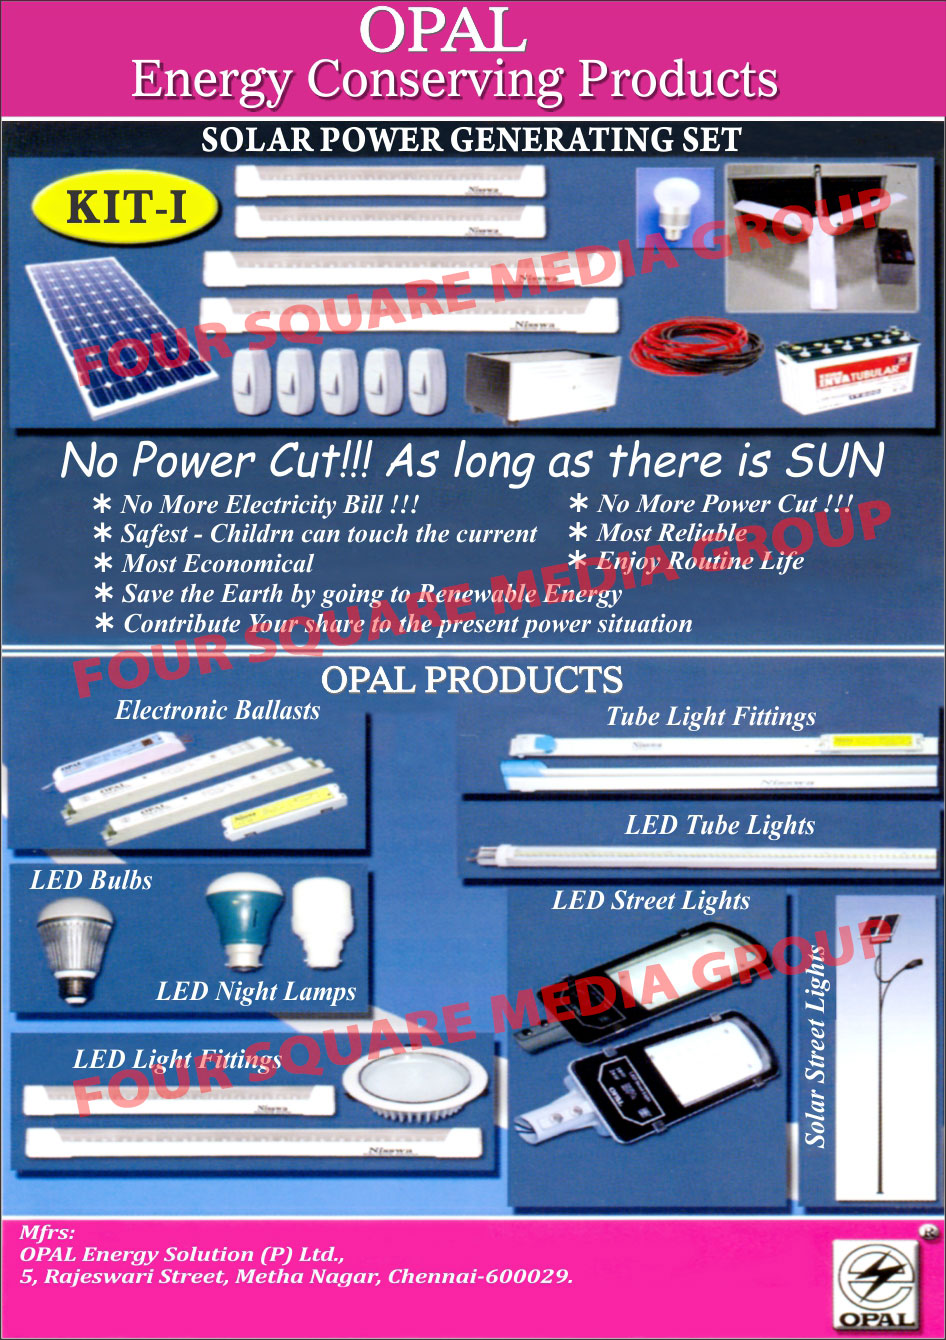 Energy Conserving Products, Solar Power Generating Set, Electronic Ballasts,Led Light Fittings, Led Lights, Led Bulbs, Led Night Lamps, Tube Light Fittings, Led Tube Lights, Led Street Lights, Solar Street Lights,Led Products, Ballasts